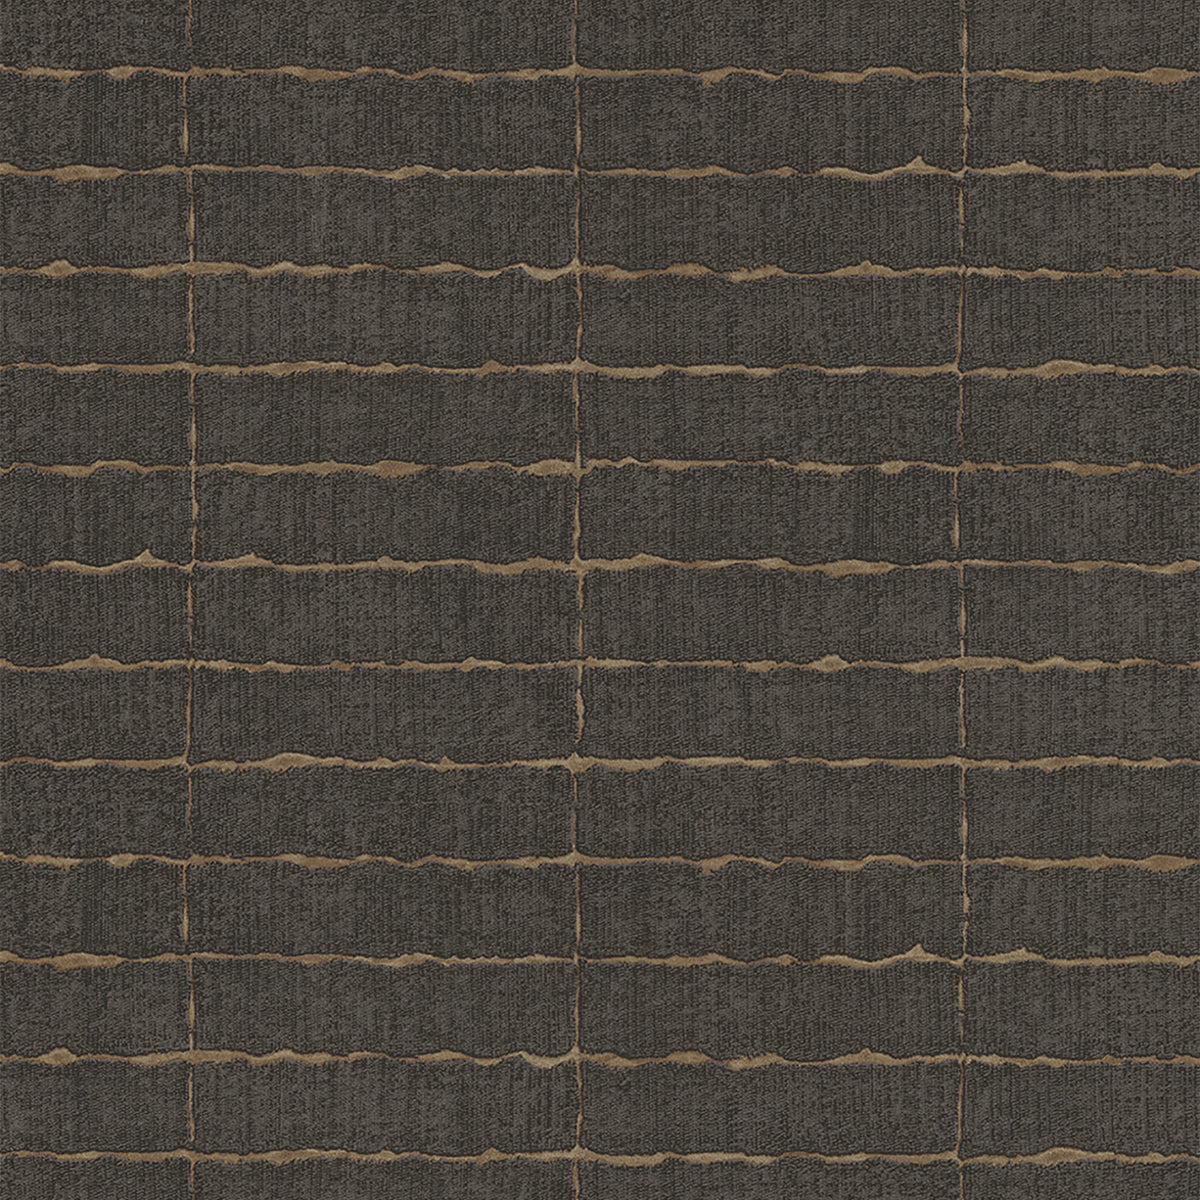 Batna Dark Brown Brick Wallpaper